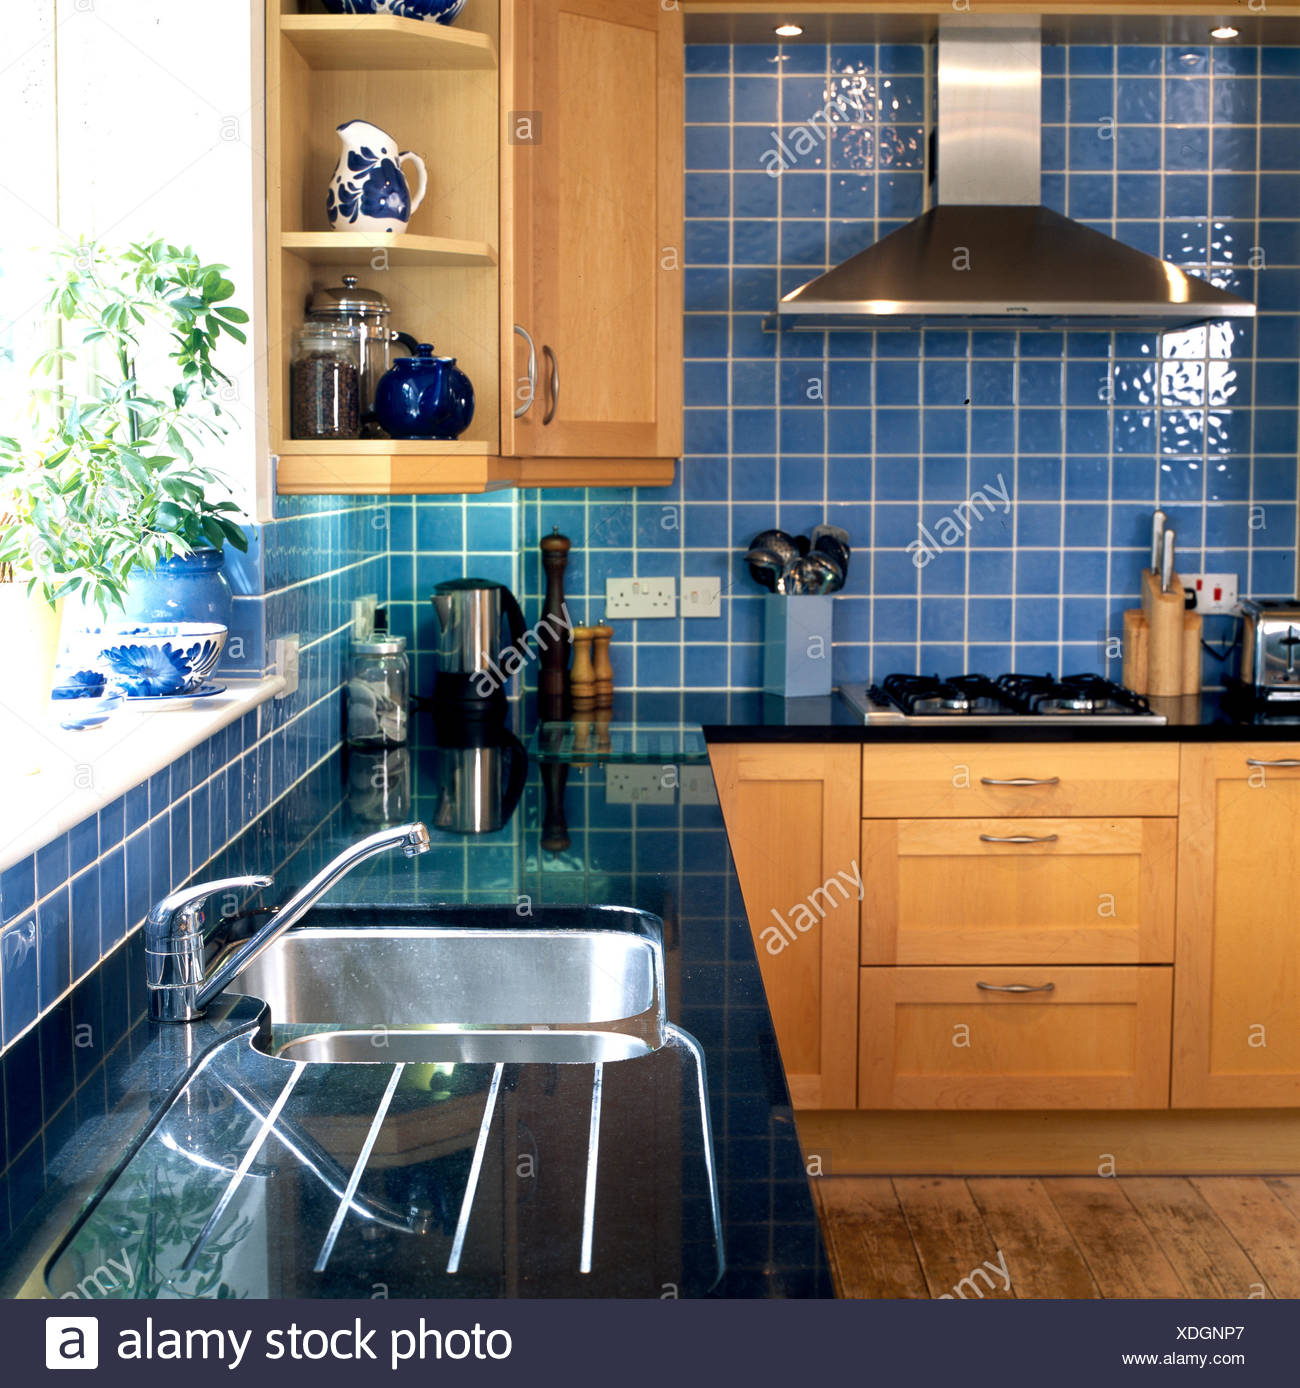 Blue tiled kitchen with black counter top Stock Photo: 283724735 - Alamy